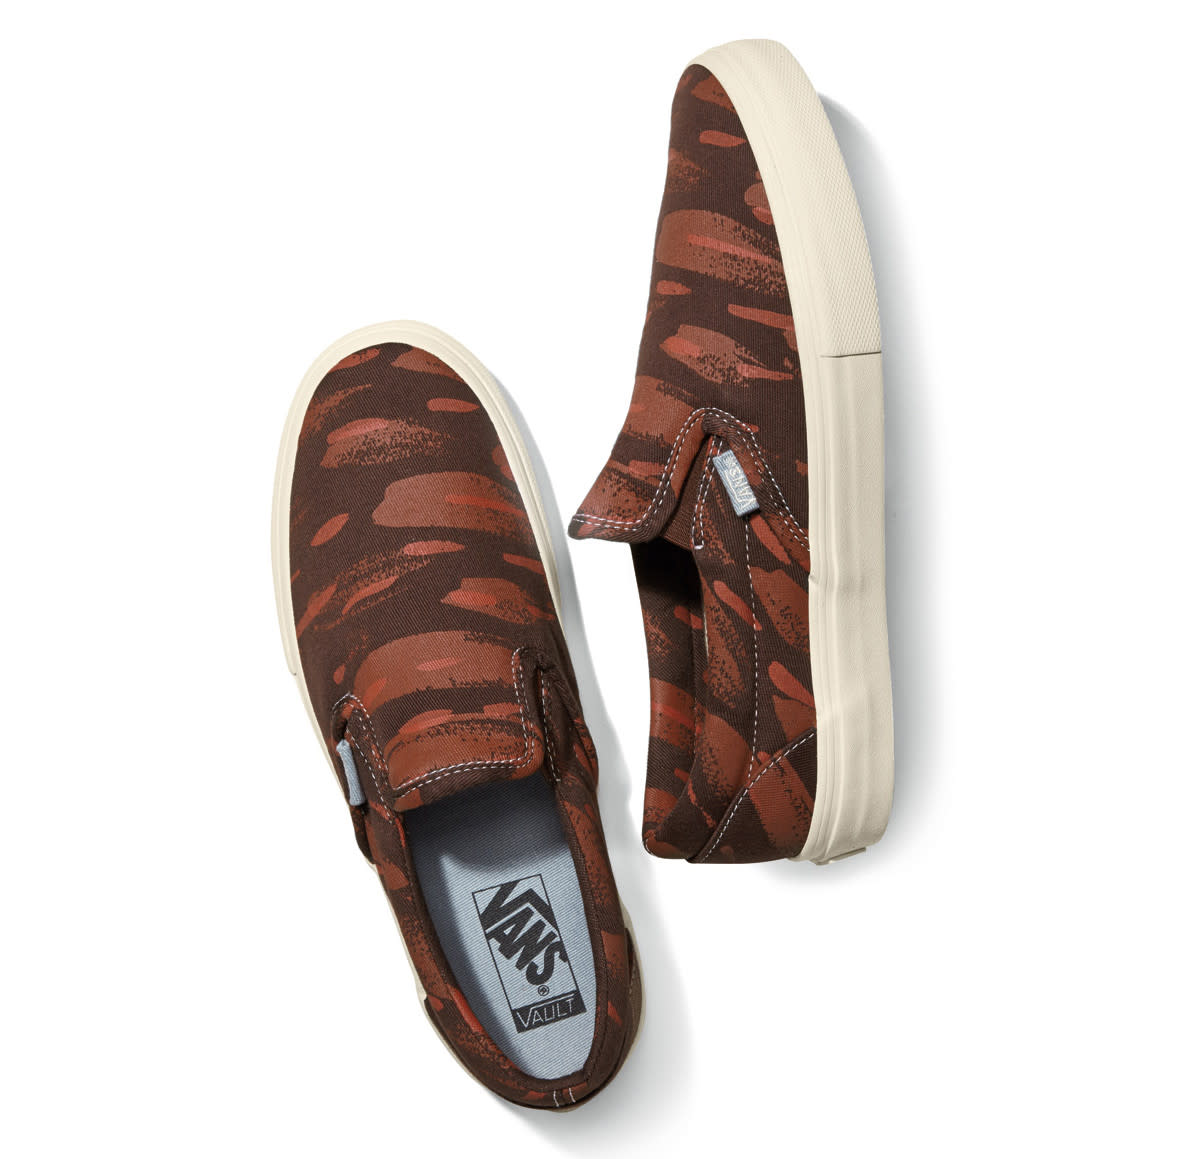 twothirds-vault-by-vans-collection-06